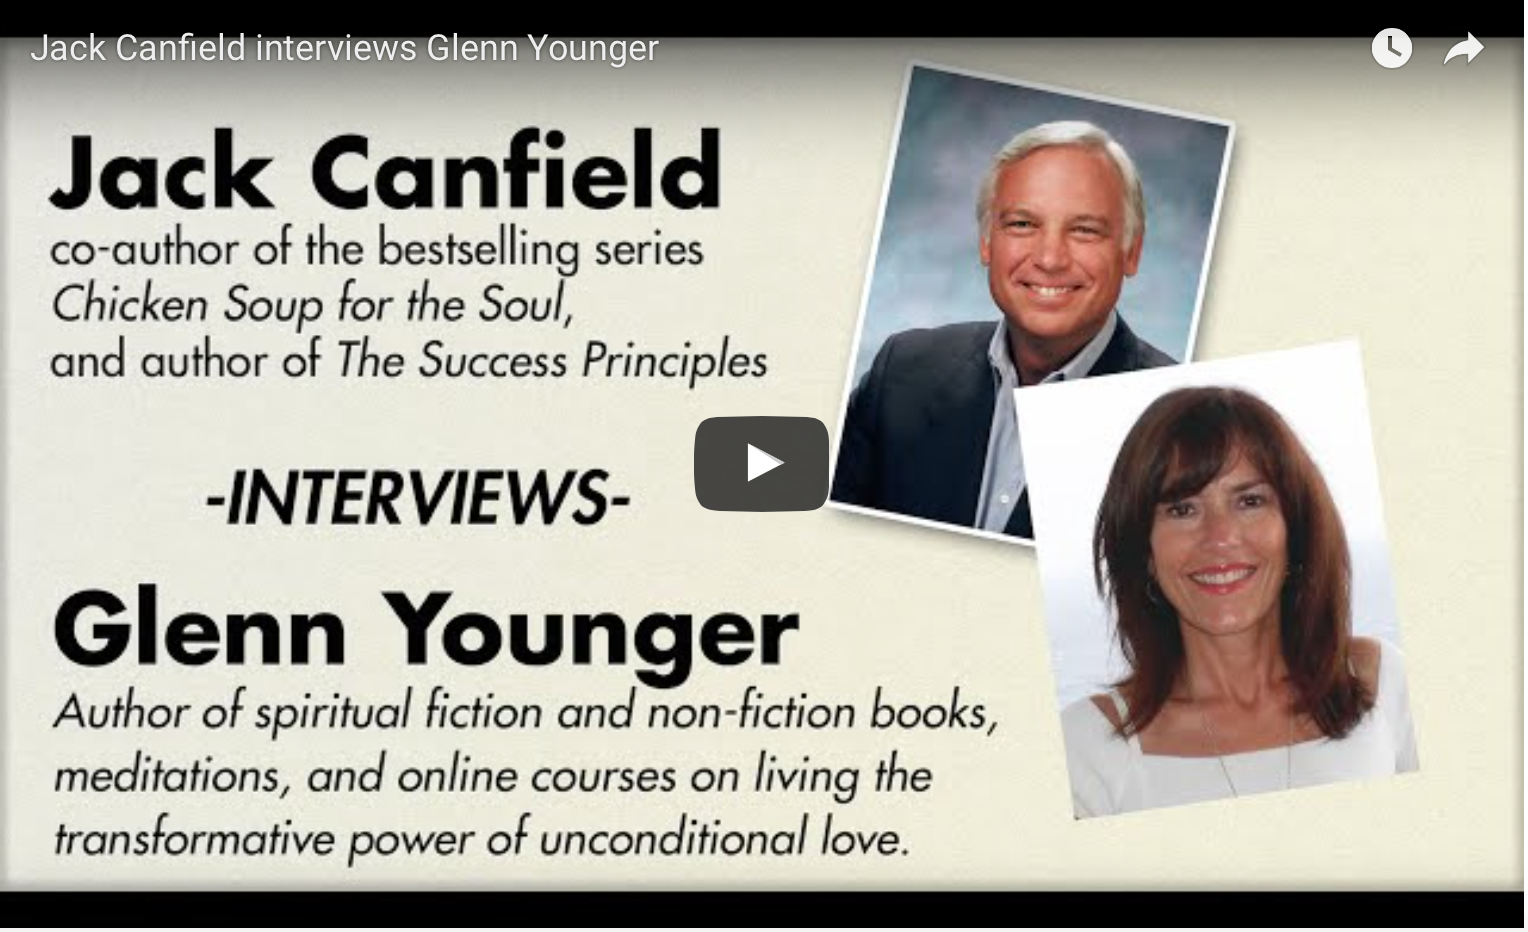 divine soul sessions divine light vibrations glenn younger author video interview best selling author jack canfield on